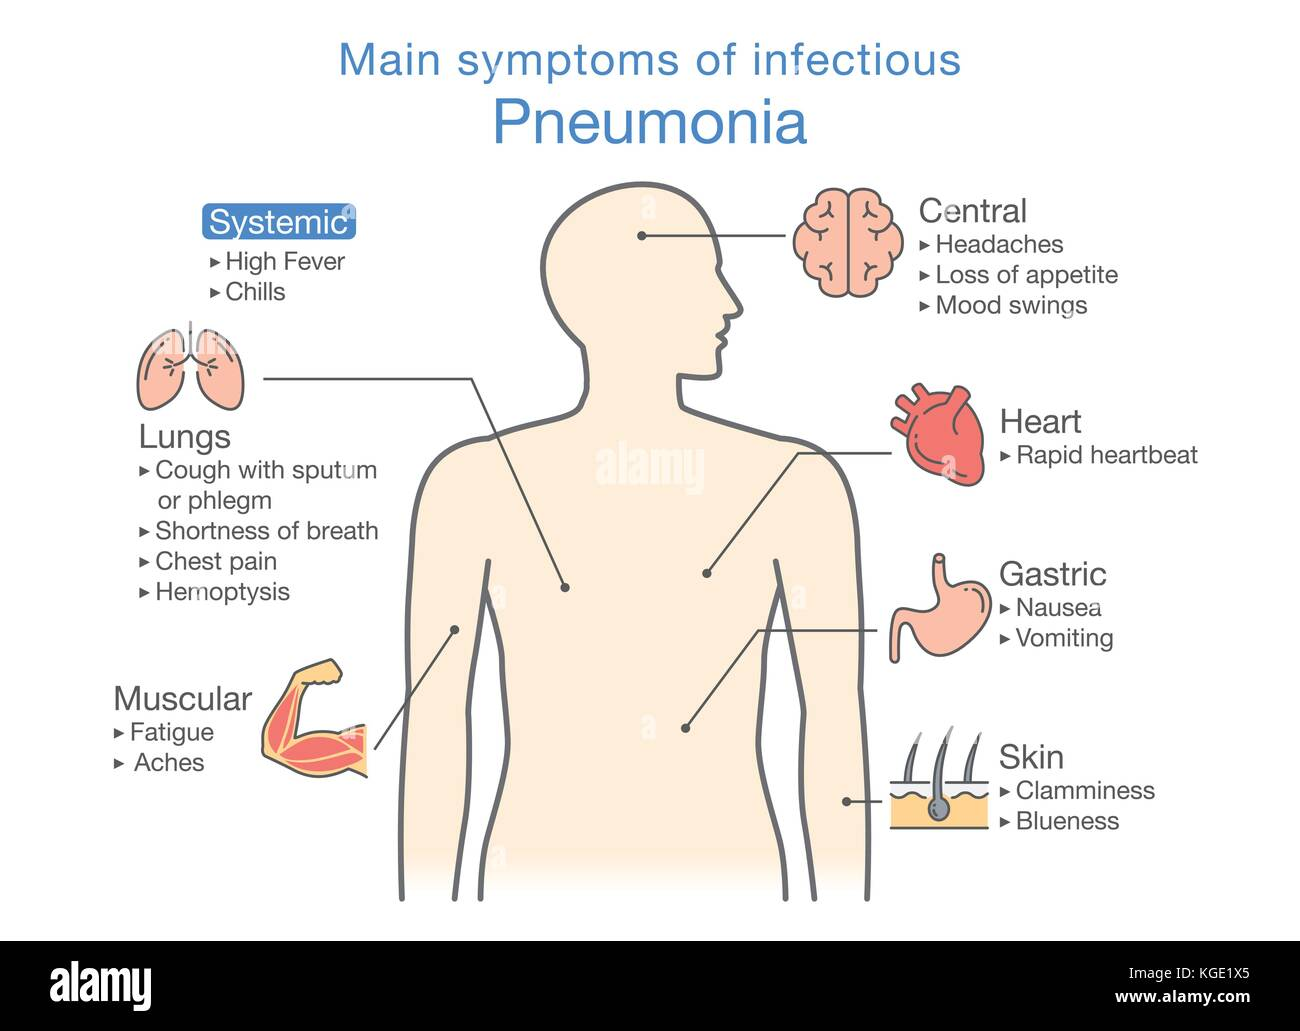 Diagram of main symptoms of infectious Pneumonia. Stock Vector